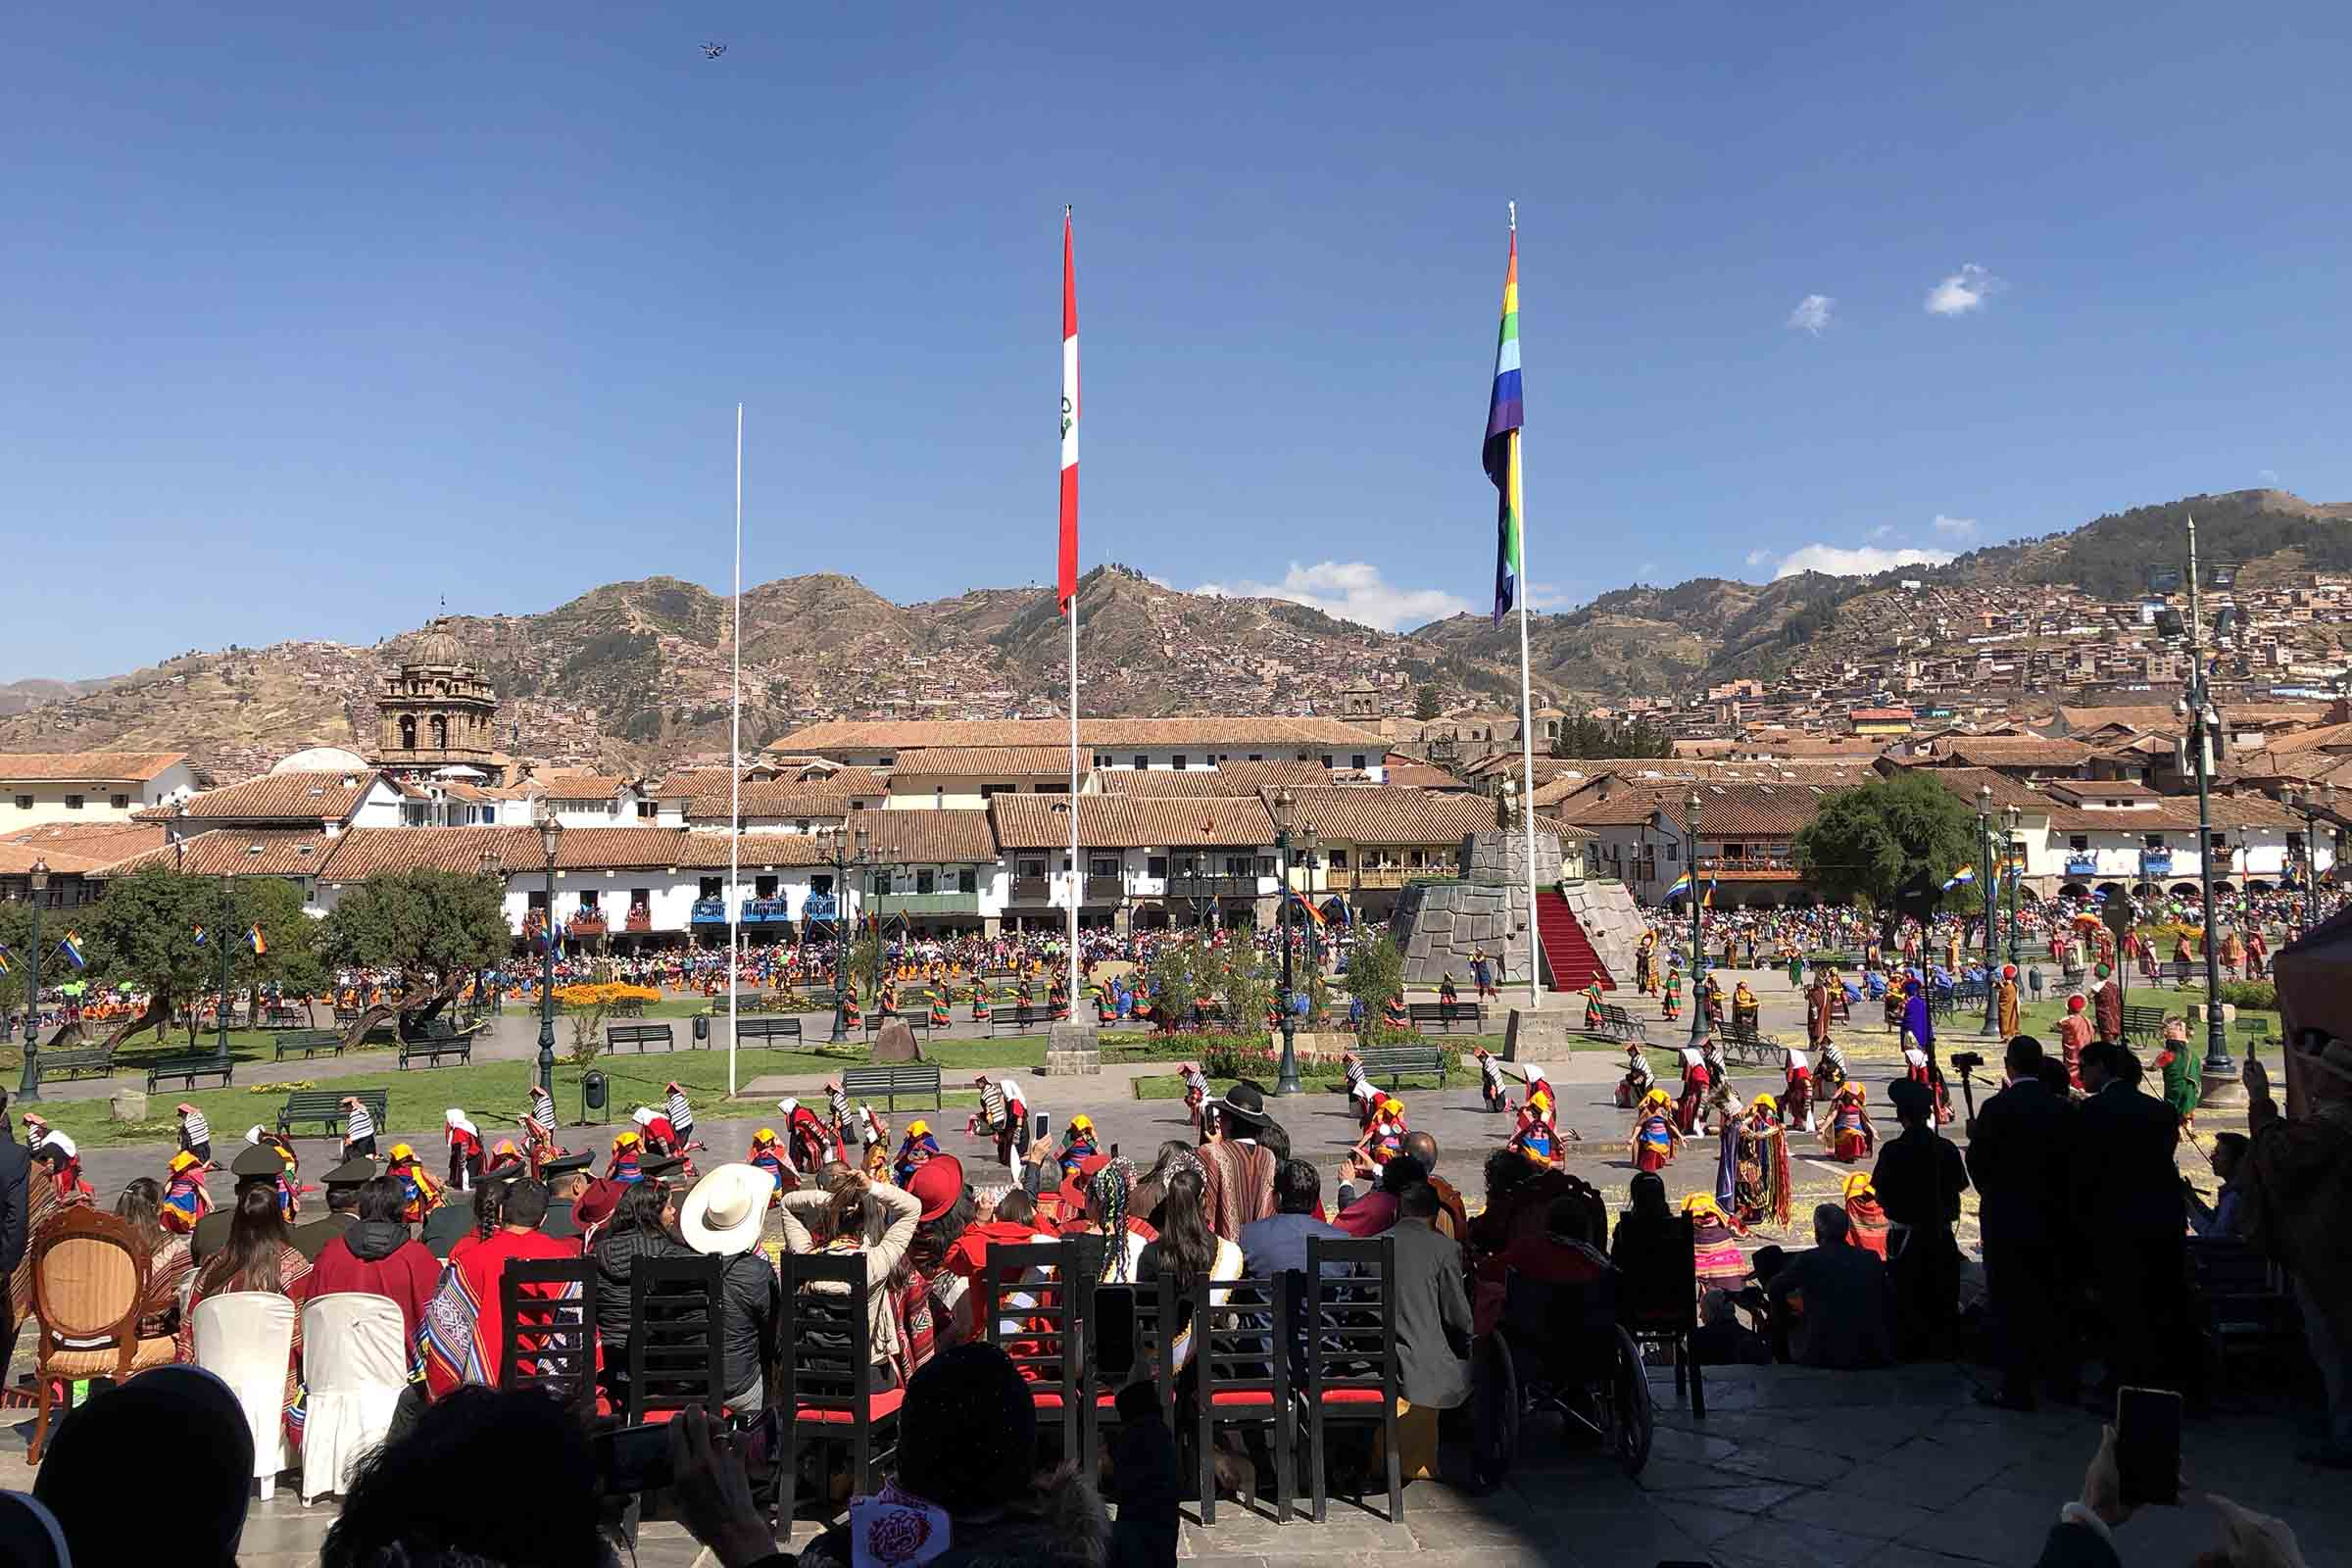 jimmy-nelson-foundation-peru-quechua-behind-the-scenes-gallery-49